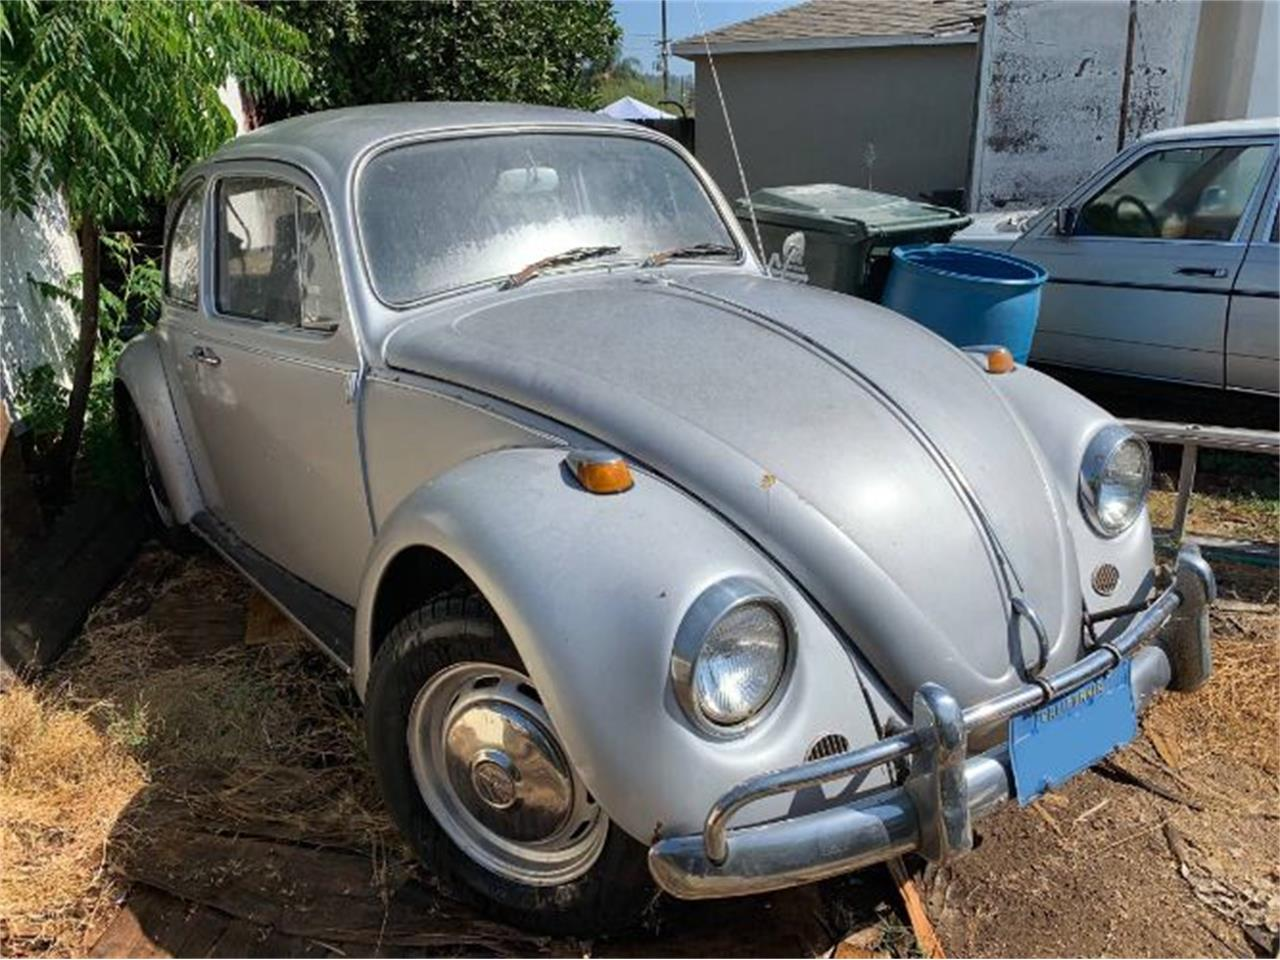 for sale 1967 volkswagen beetle in cadillac, michigan cars - cadillac, mi at geebo